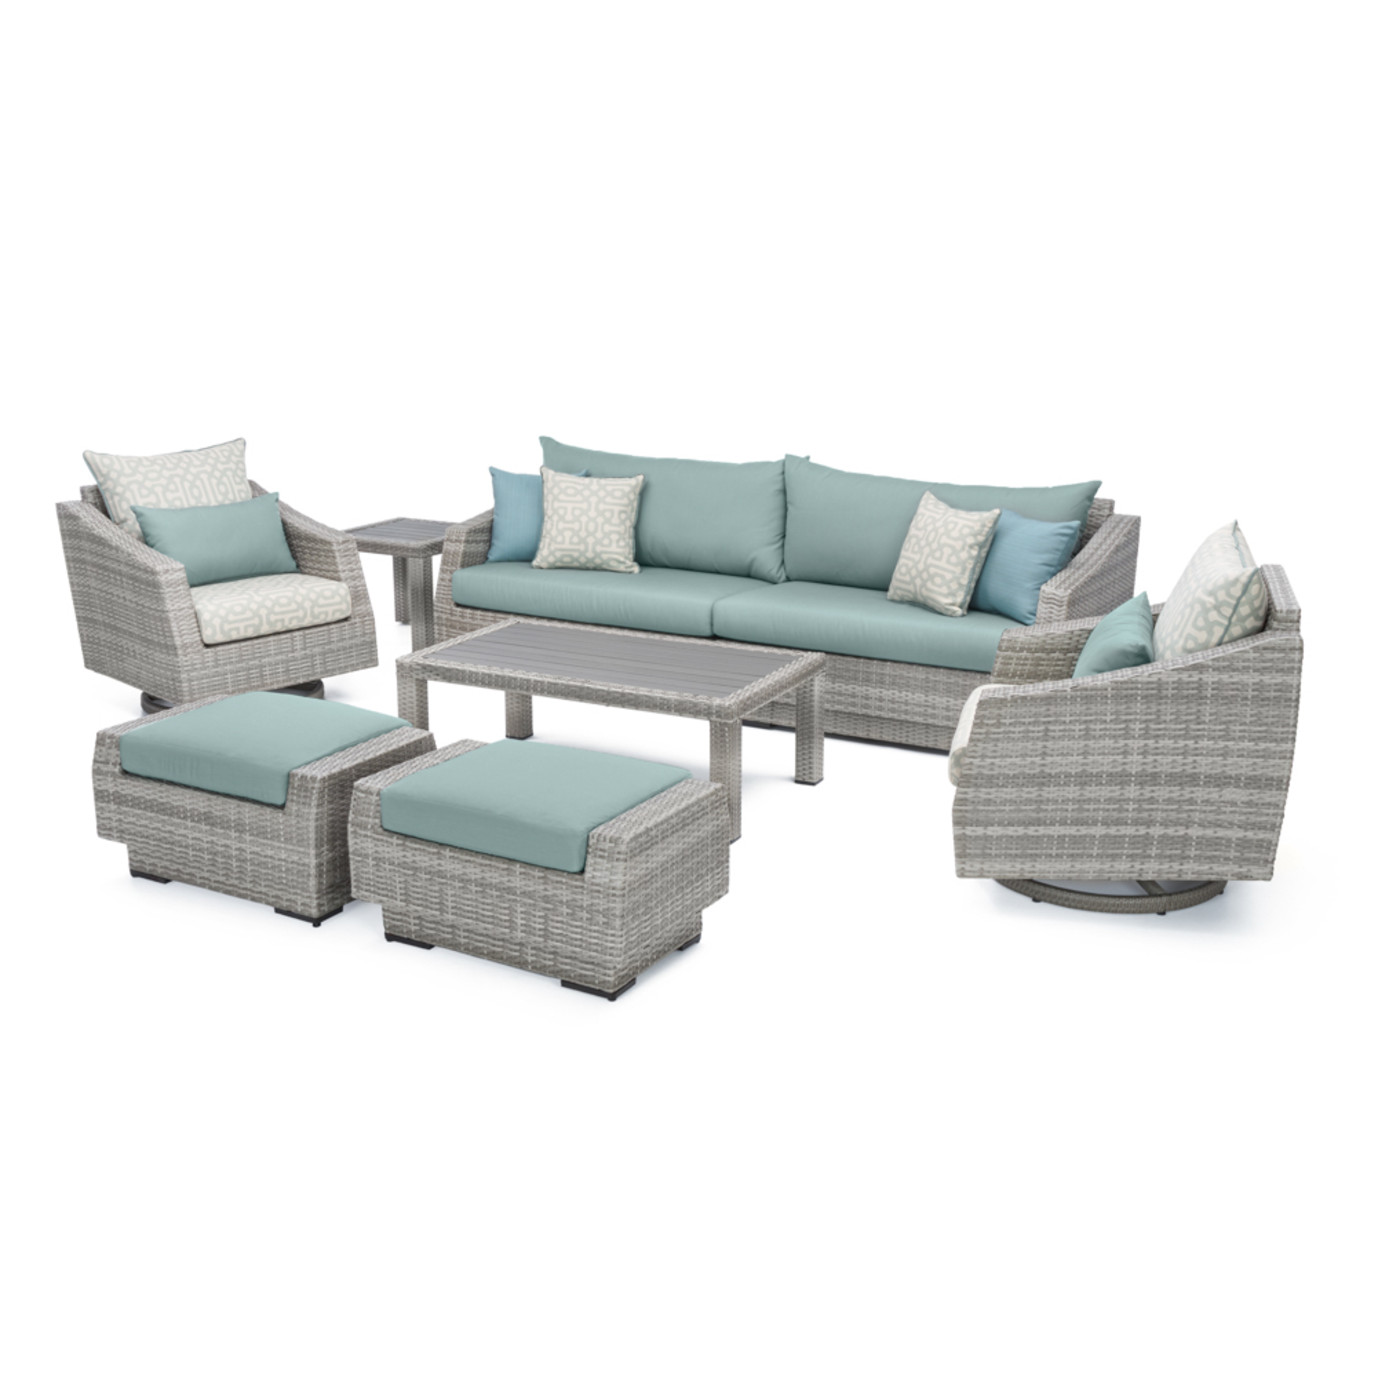 Cannes Deluxe 8pc Sofa amp Motion Club Chair Set Spa Blue